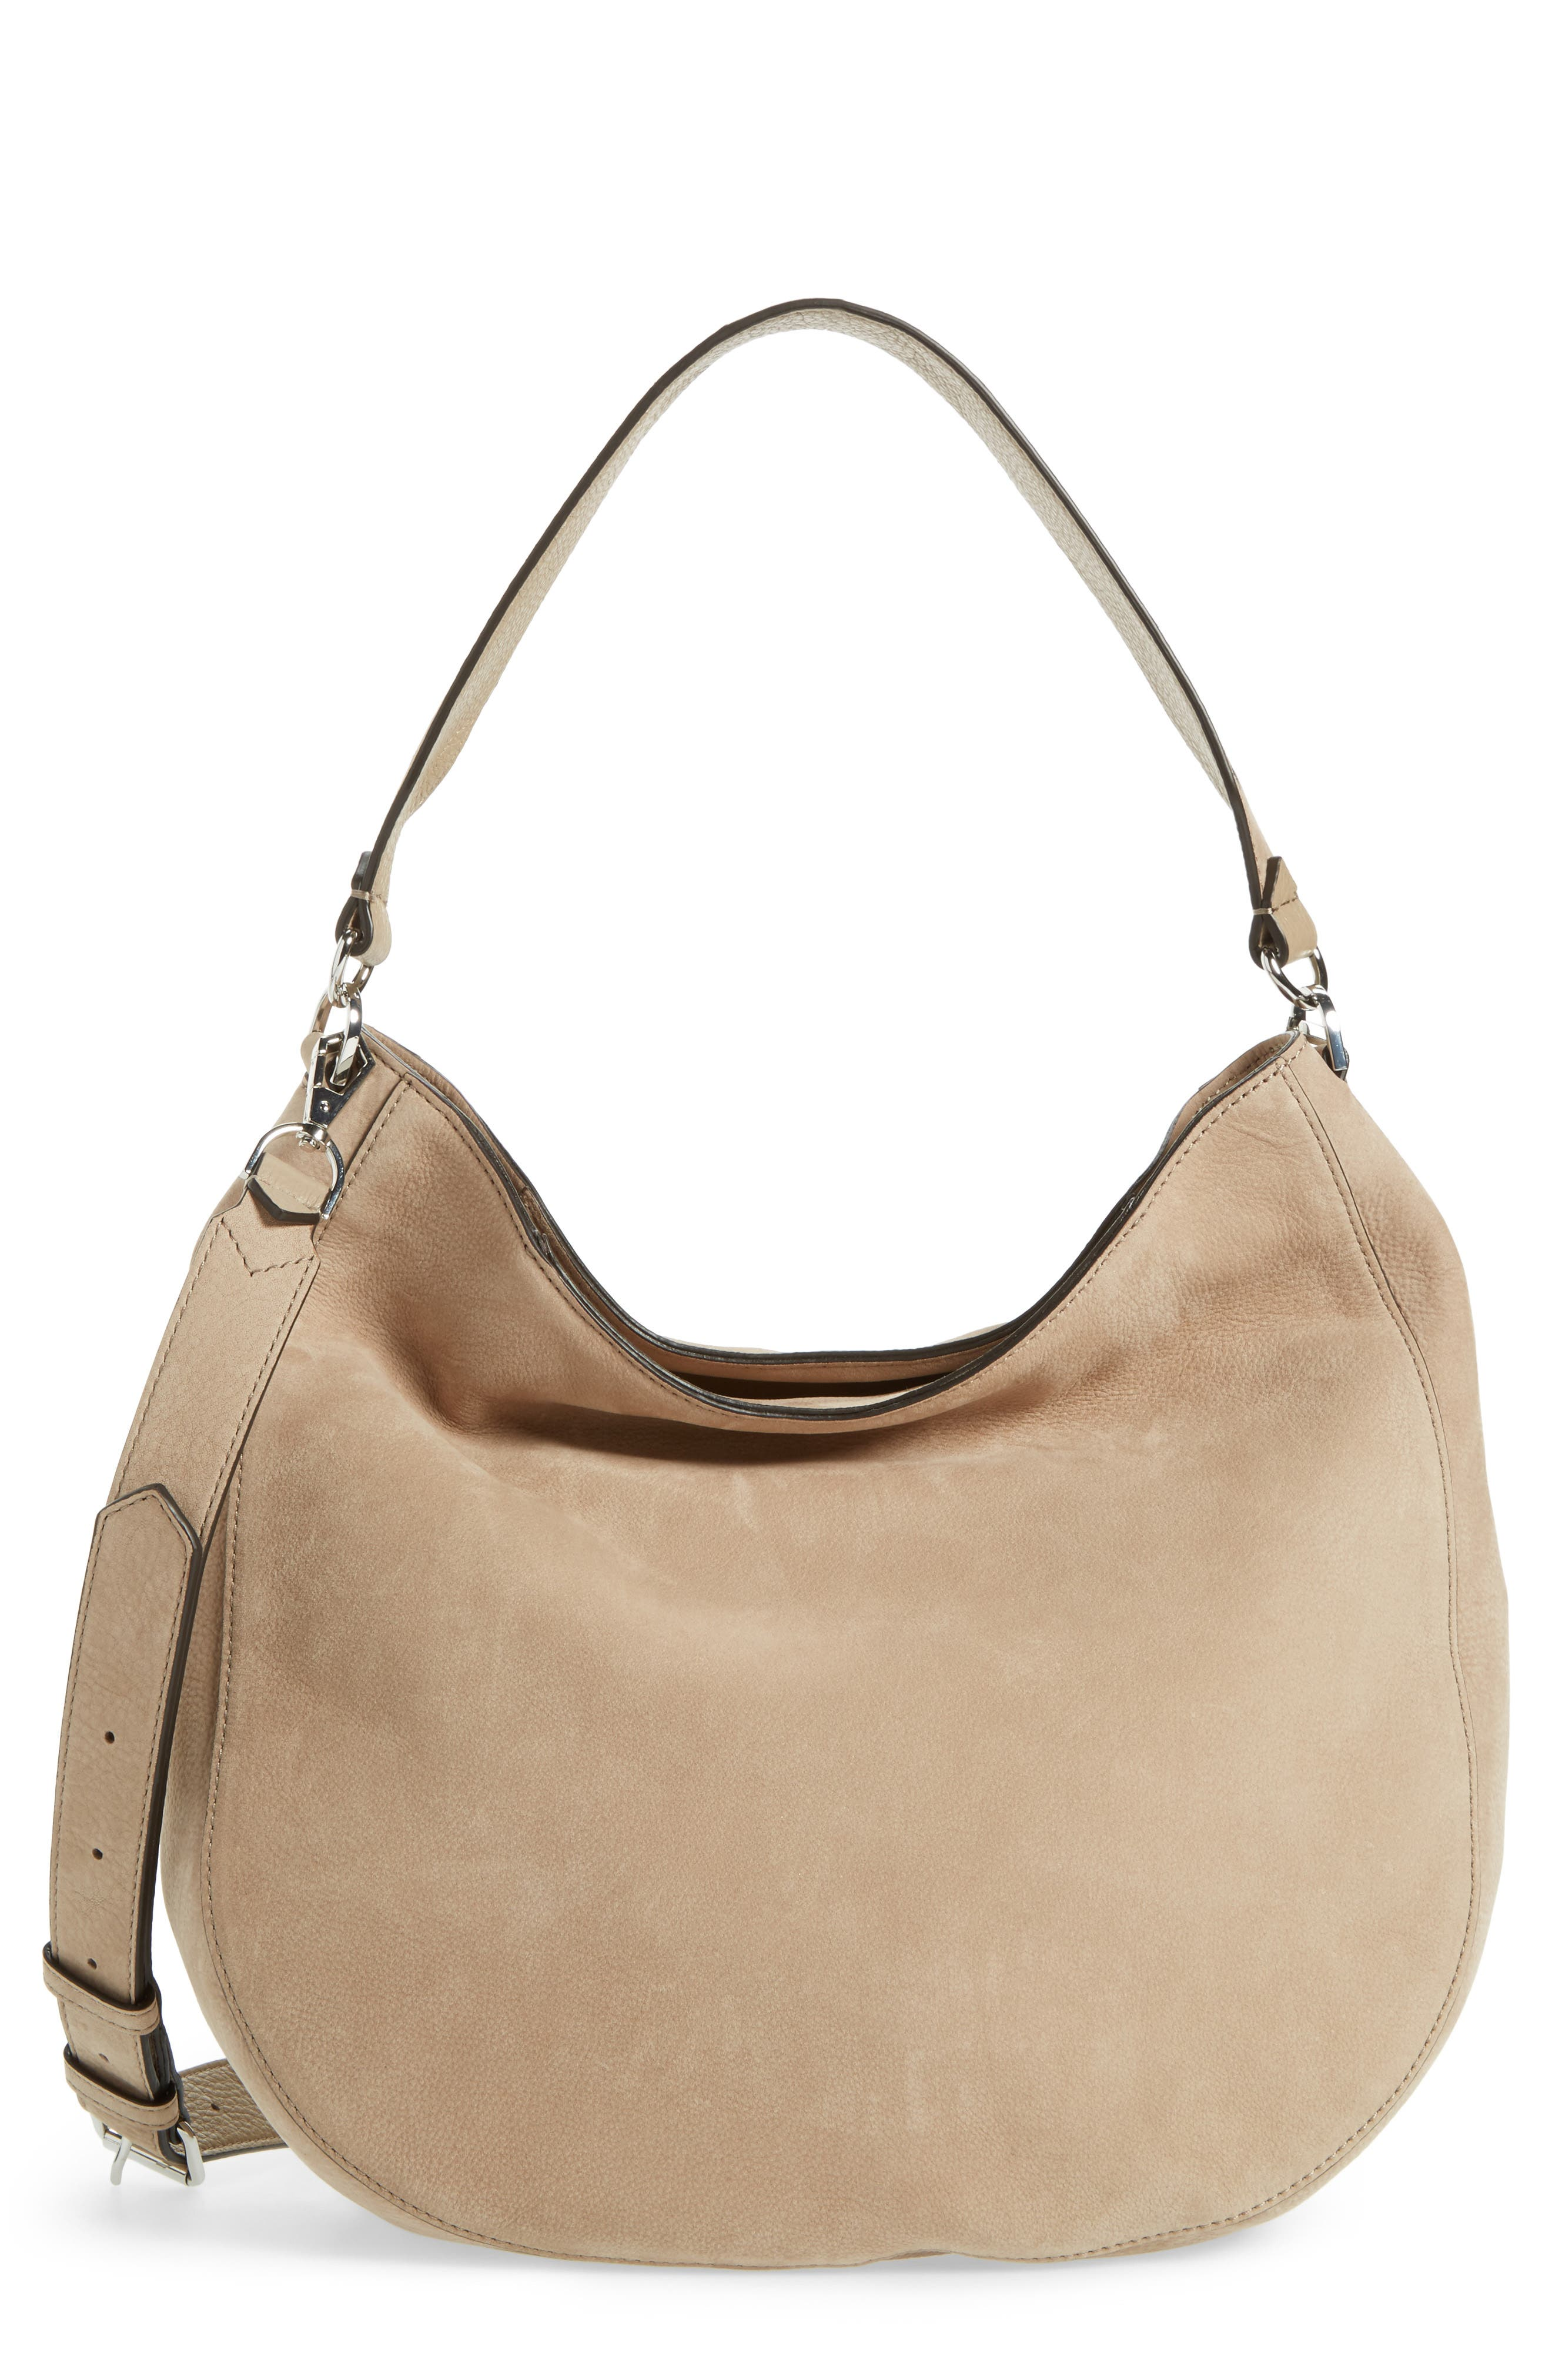 REBECCA MINKOFF Convertible Nubuck Hobo with Embroidered Strap